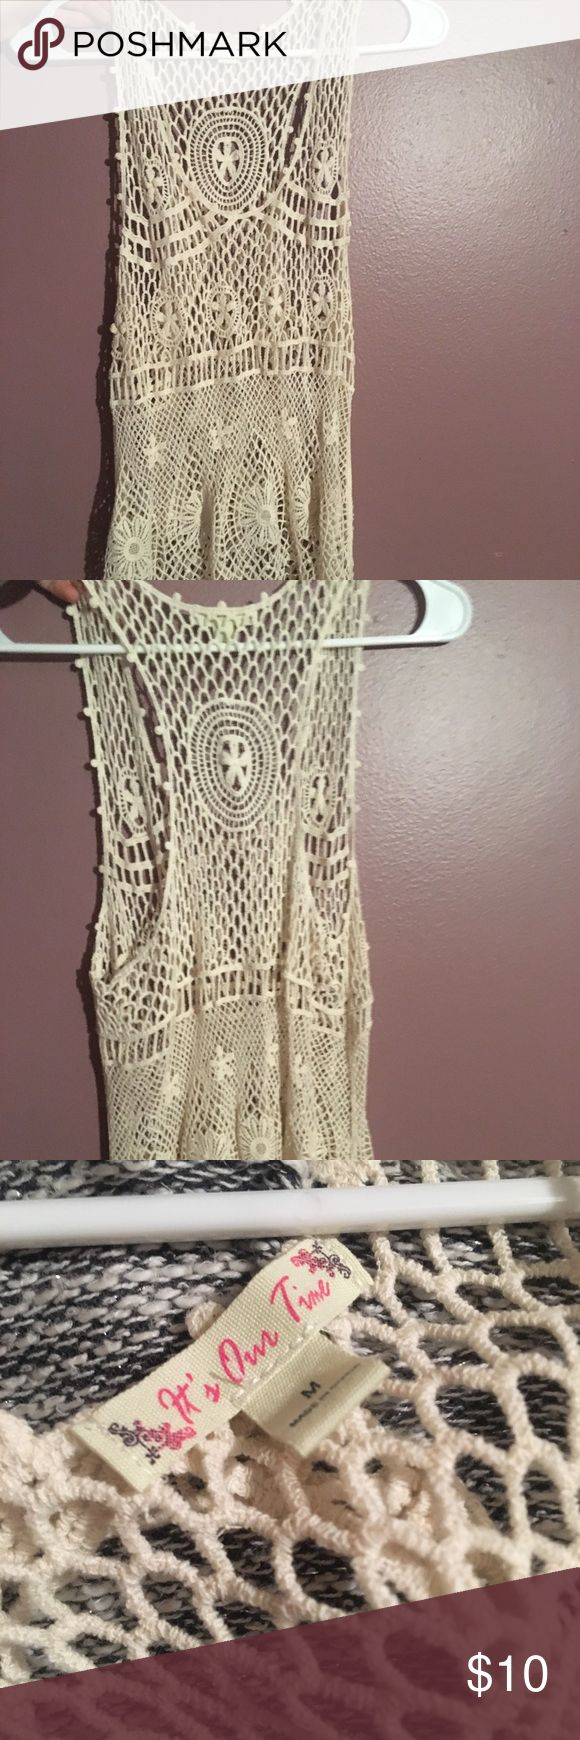 Lace see through tank so cute and fashionable top. Worn once. Goes great over a swimming suit or tank top. Love this look. it's our time Tops Tank Tops